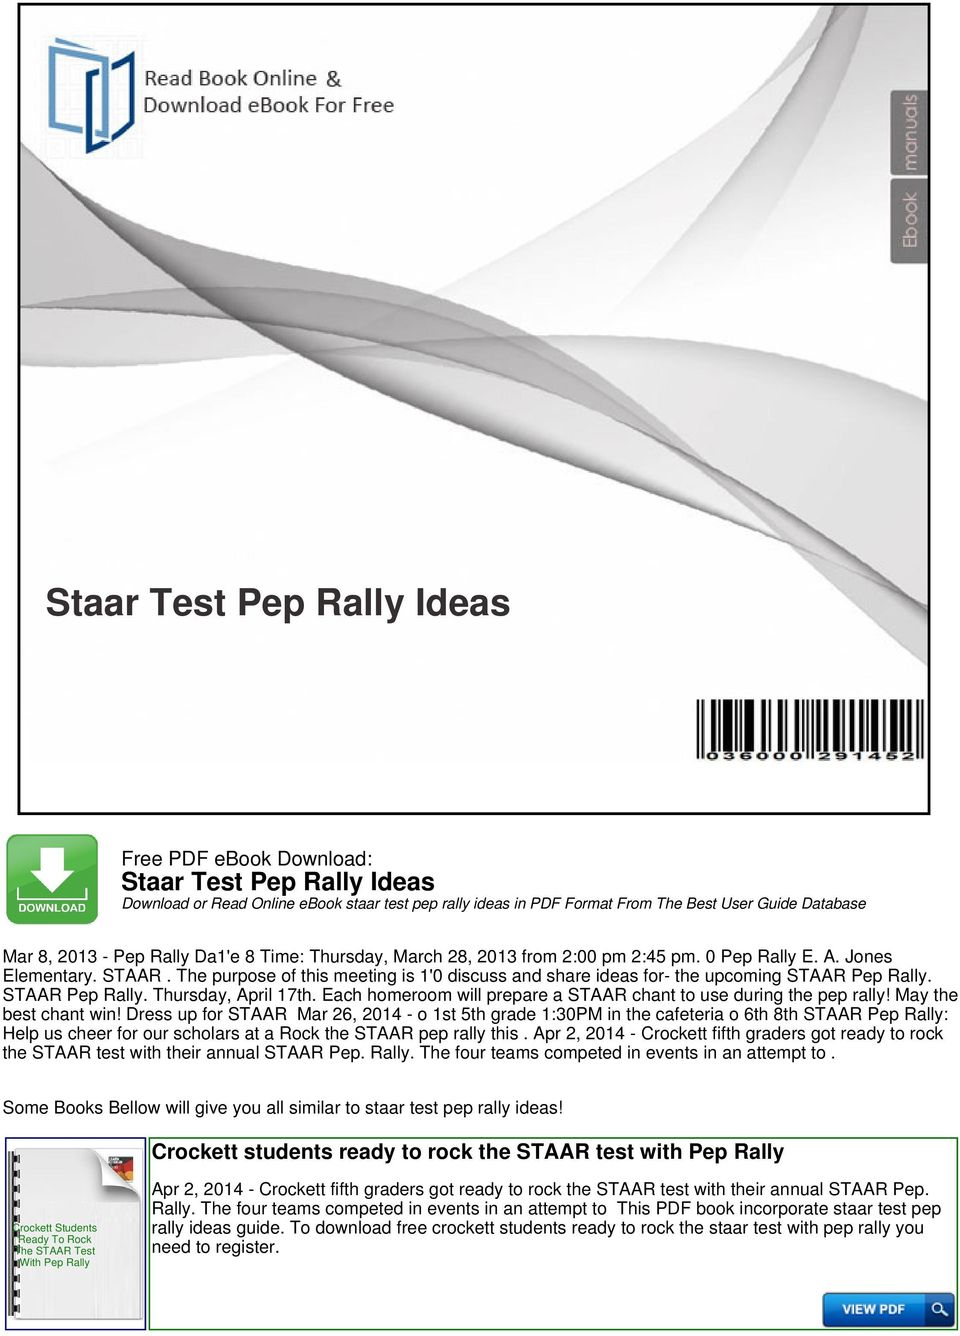 Staar test pep rally ideas pdf the purpose of this meeting is 10 discuss and share ideas for the fandeluxe Images